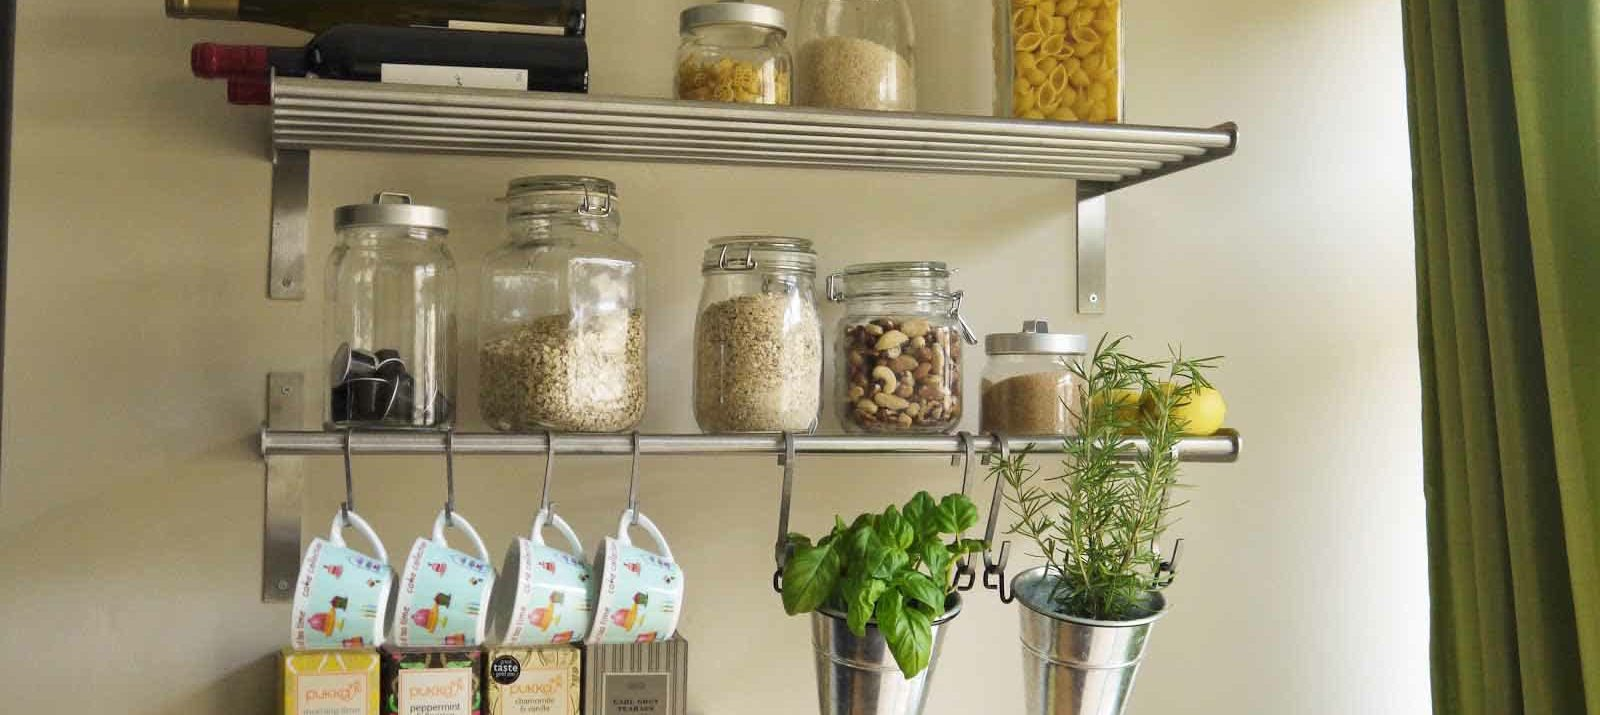 Kitchen Shelves Wall Mounted 11 Clever And Easy Kitchen Organization Ideas You Ll Love